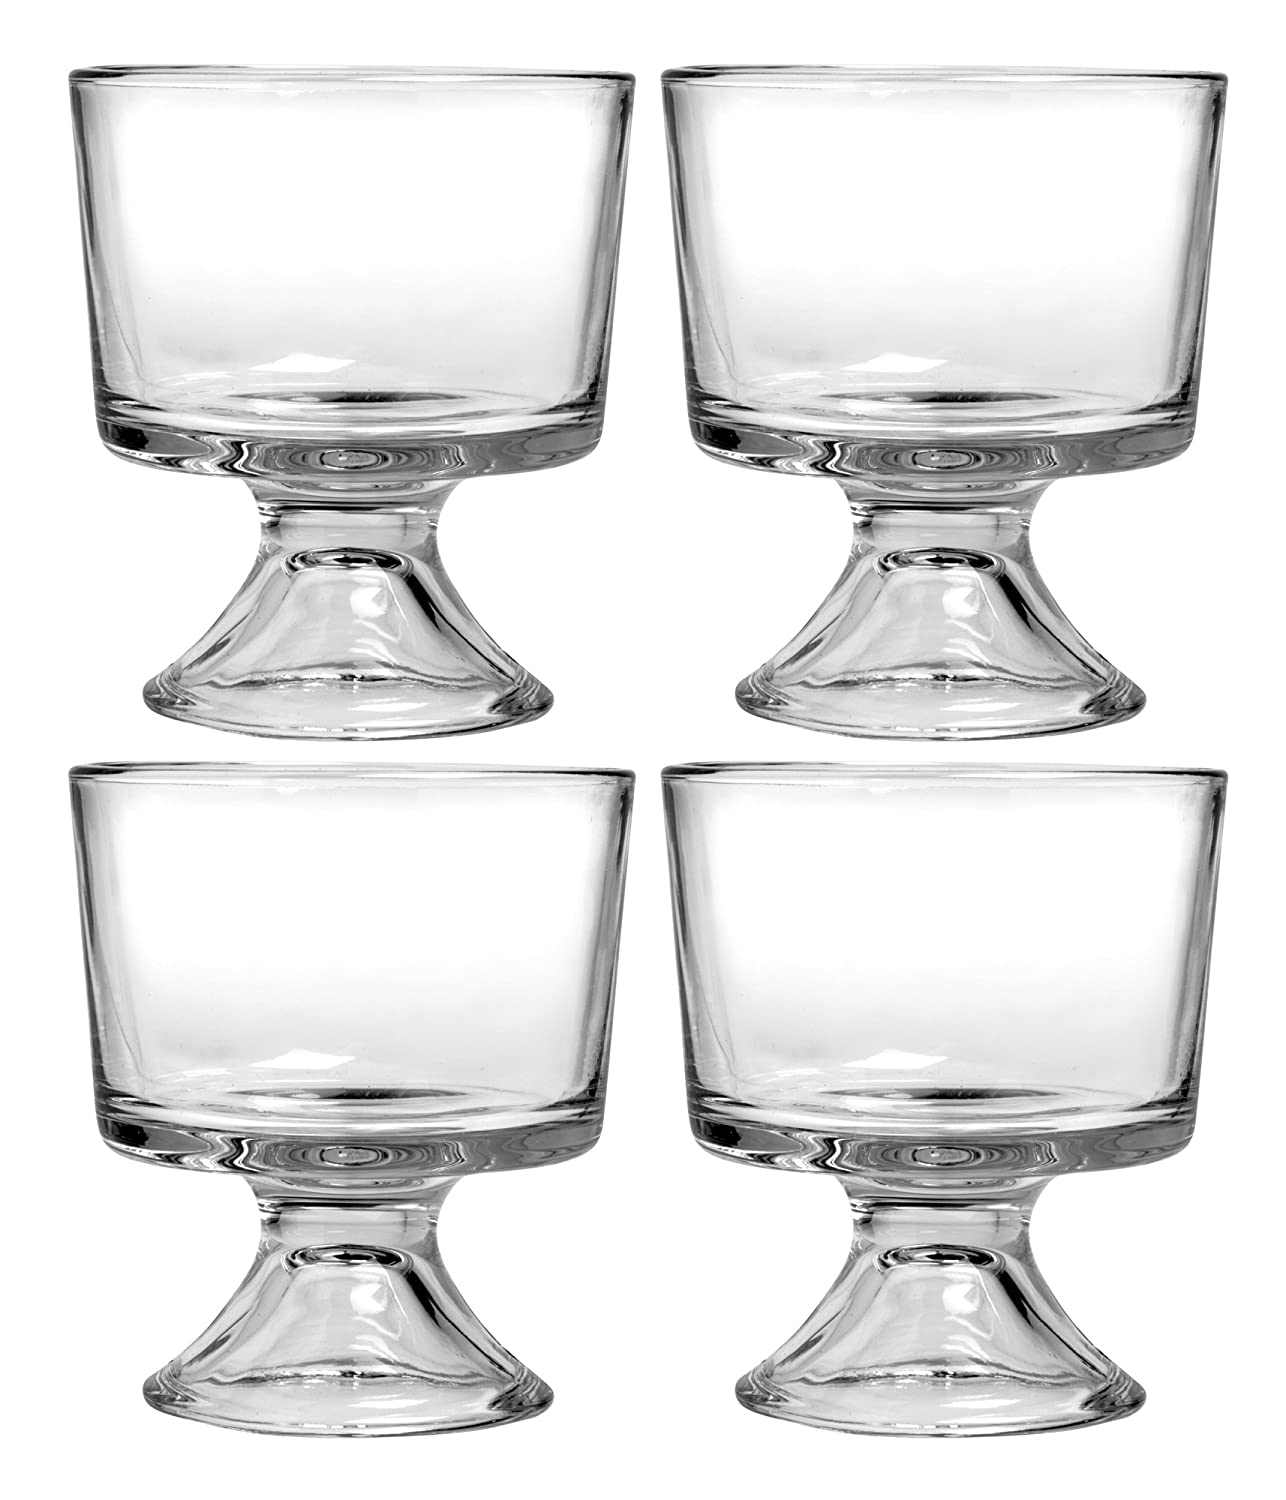 Anchor Hocking Set of 4 Glass Sundae Glasses, Glass Dessert Dishes, Glass Trifle Punch Bowl 4AH86811